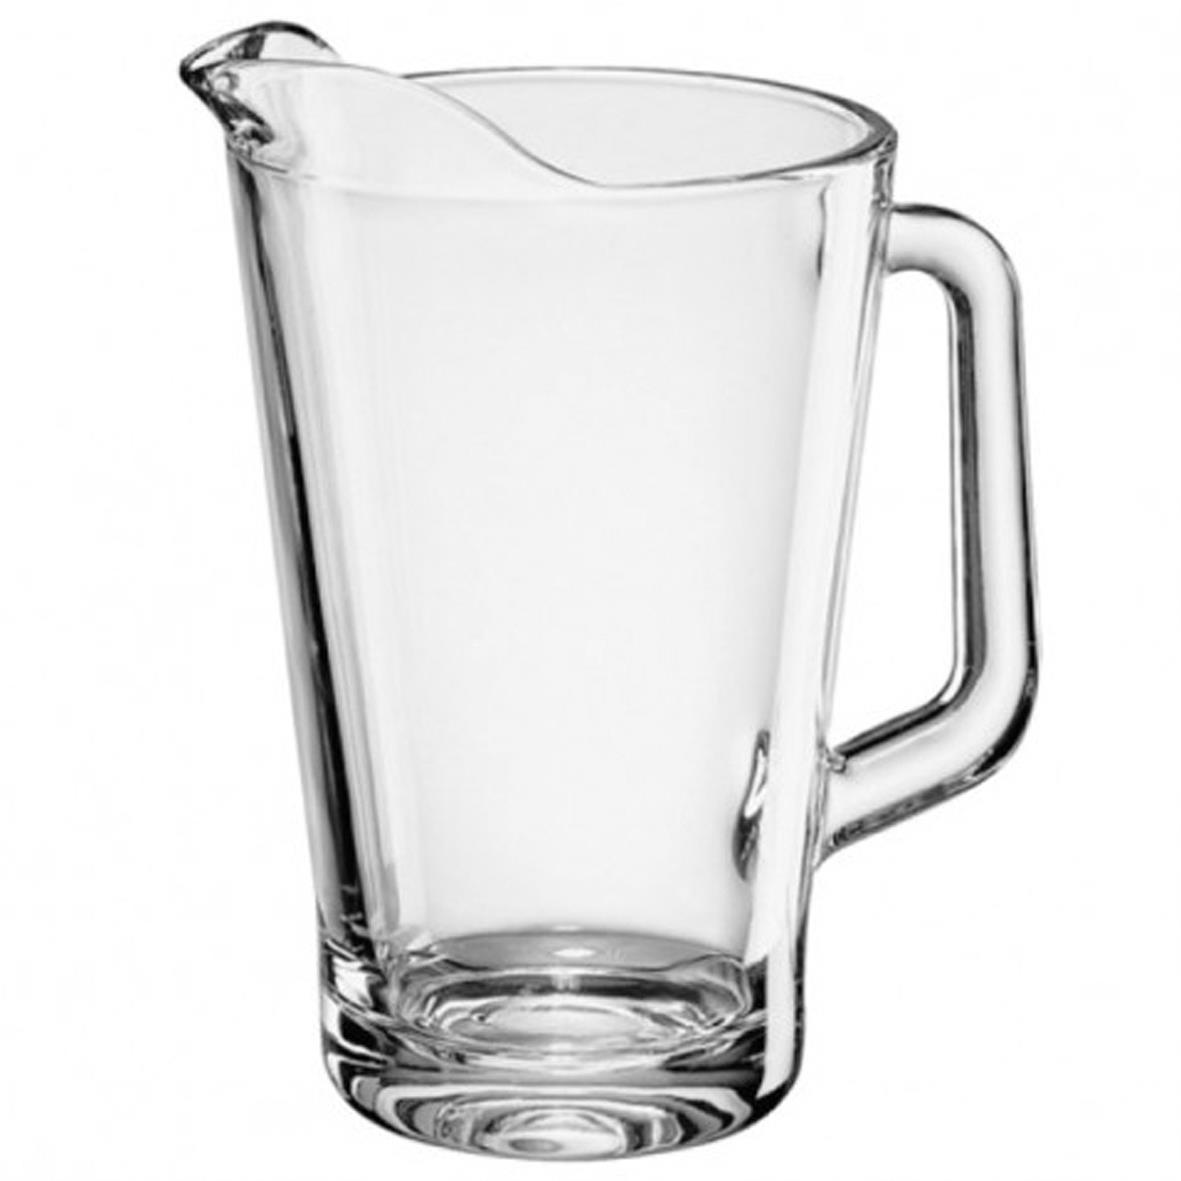 Pitcher Conic 1,8 liter bedrukken